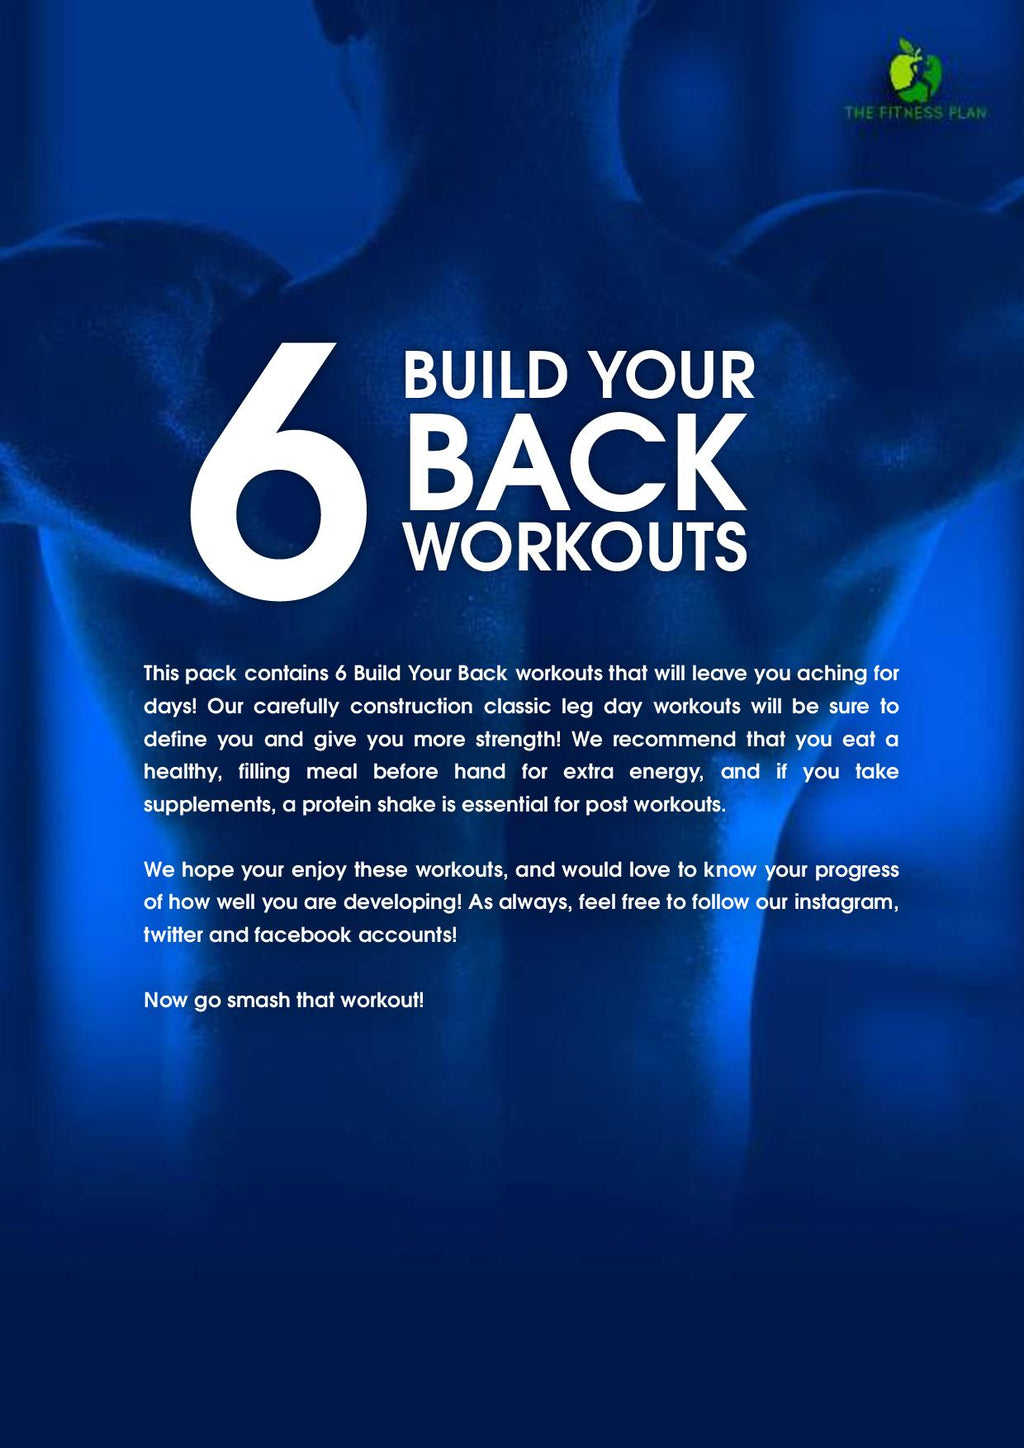 6 Build Your Back Workouts